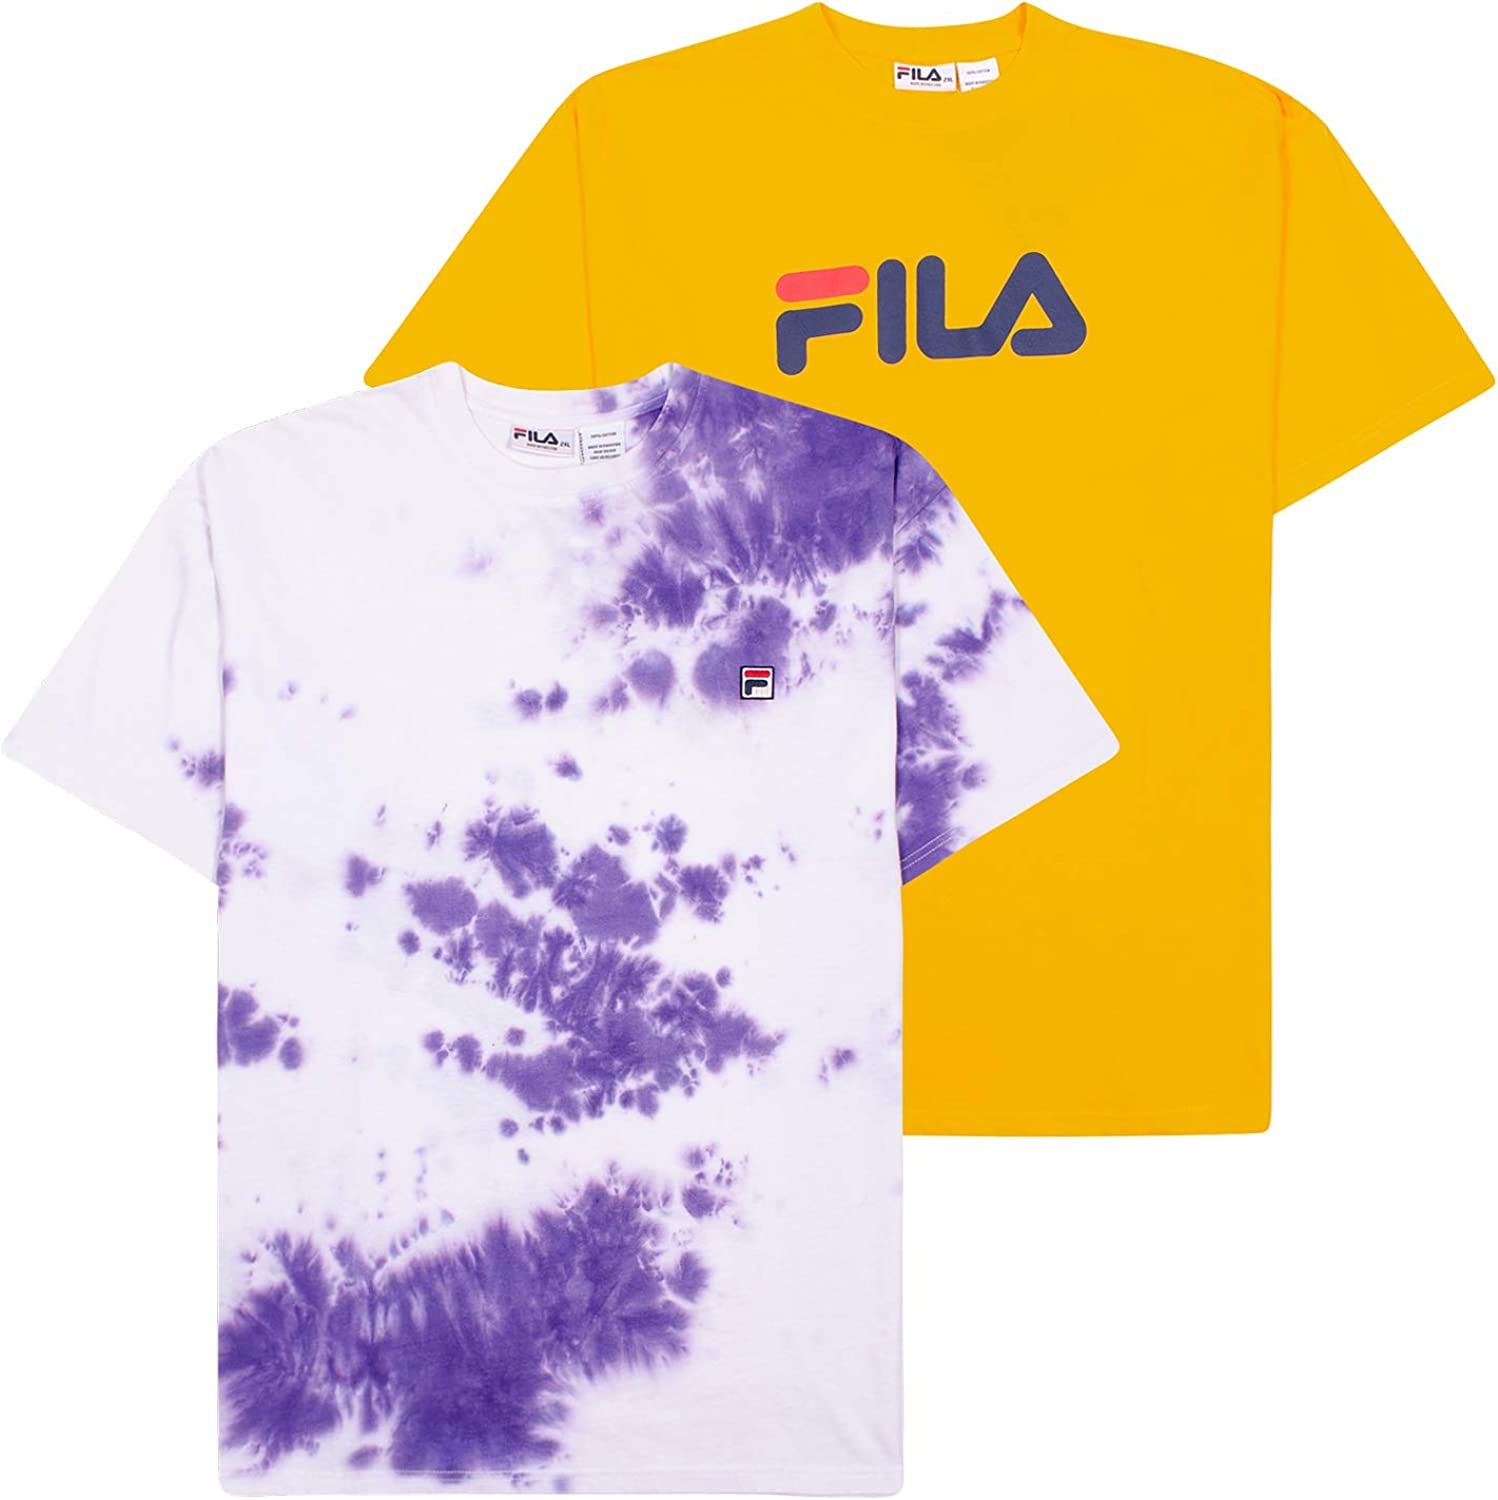 FilaBig & Tall T-Shirts for Men, Oversize Tees, 2 Pack